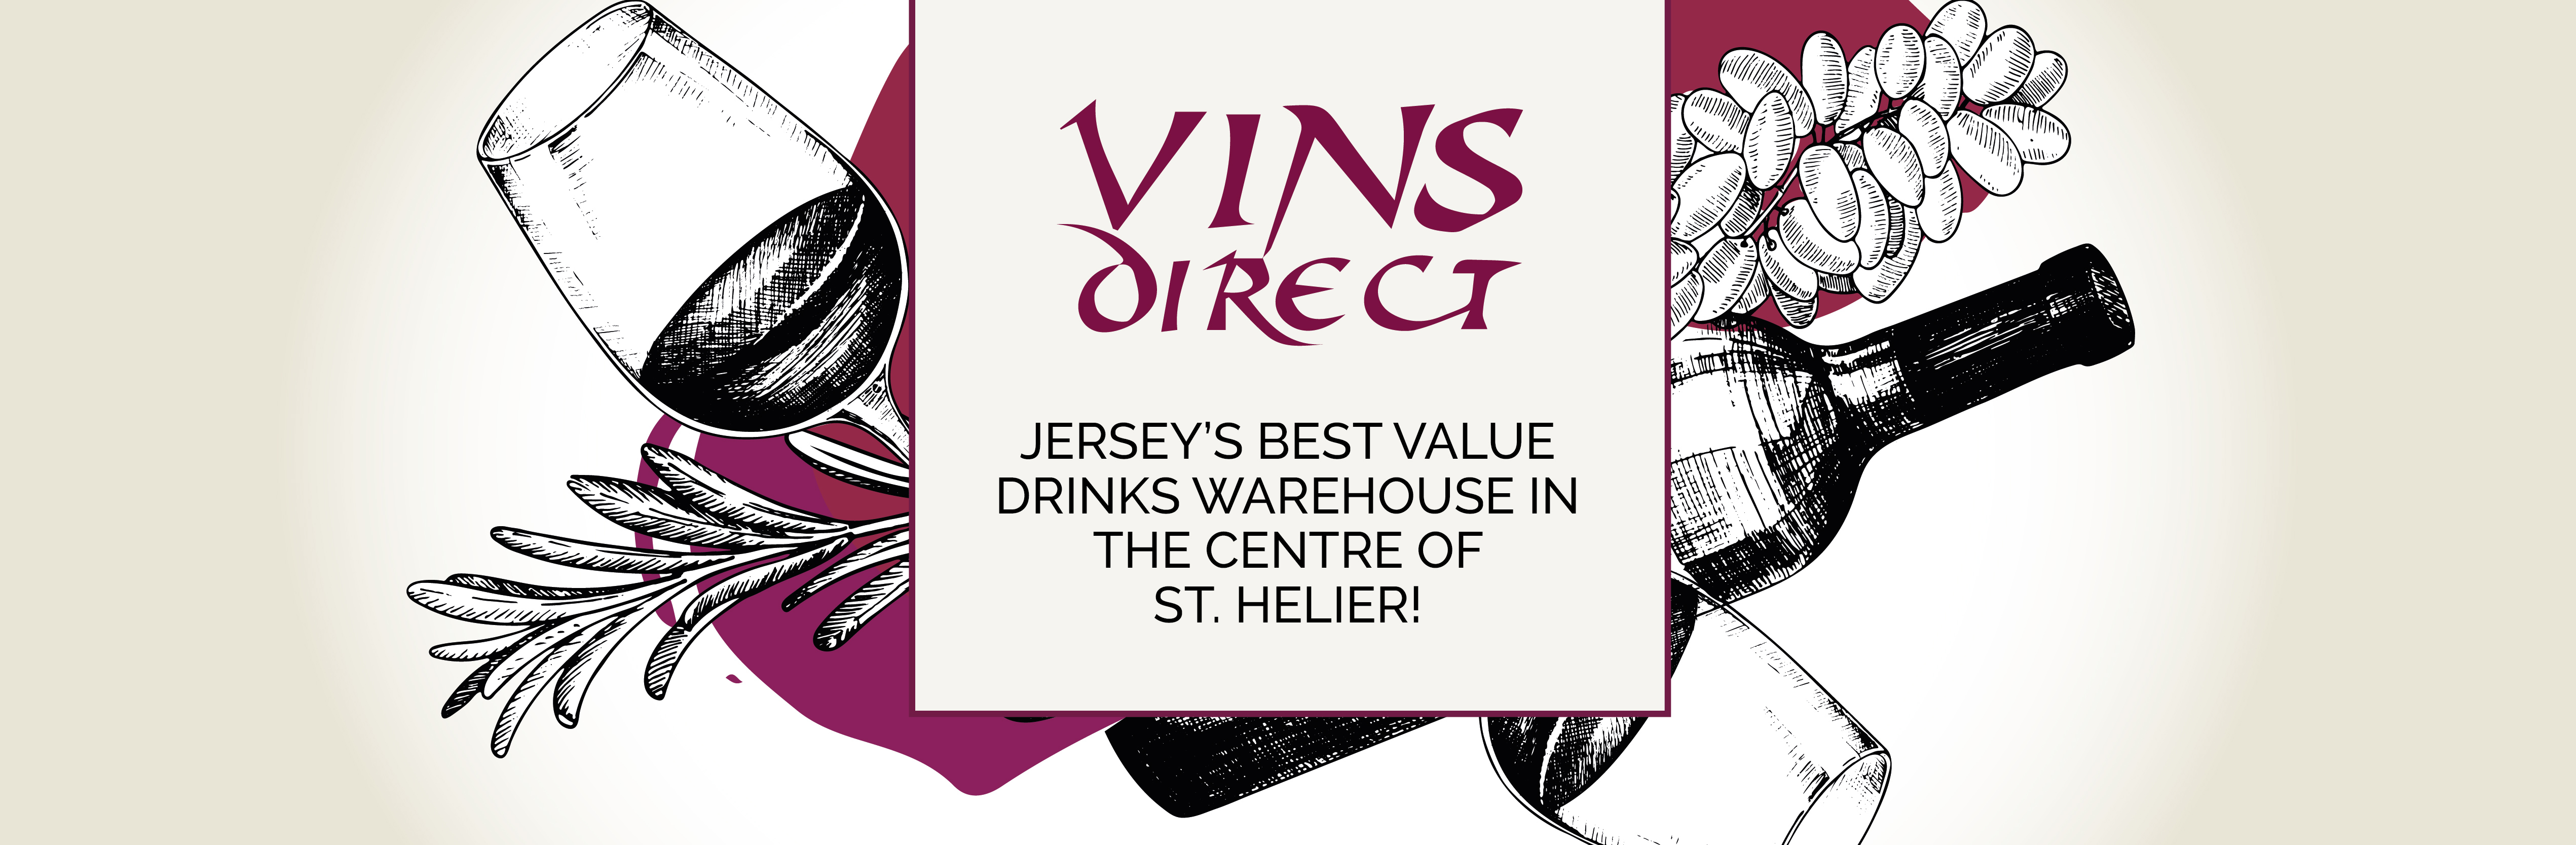 Vins Direct Home Banner